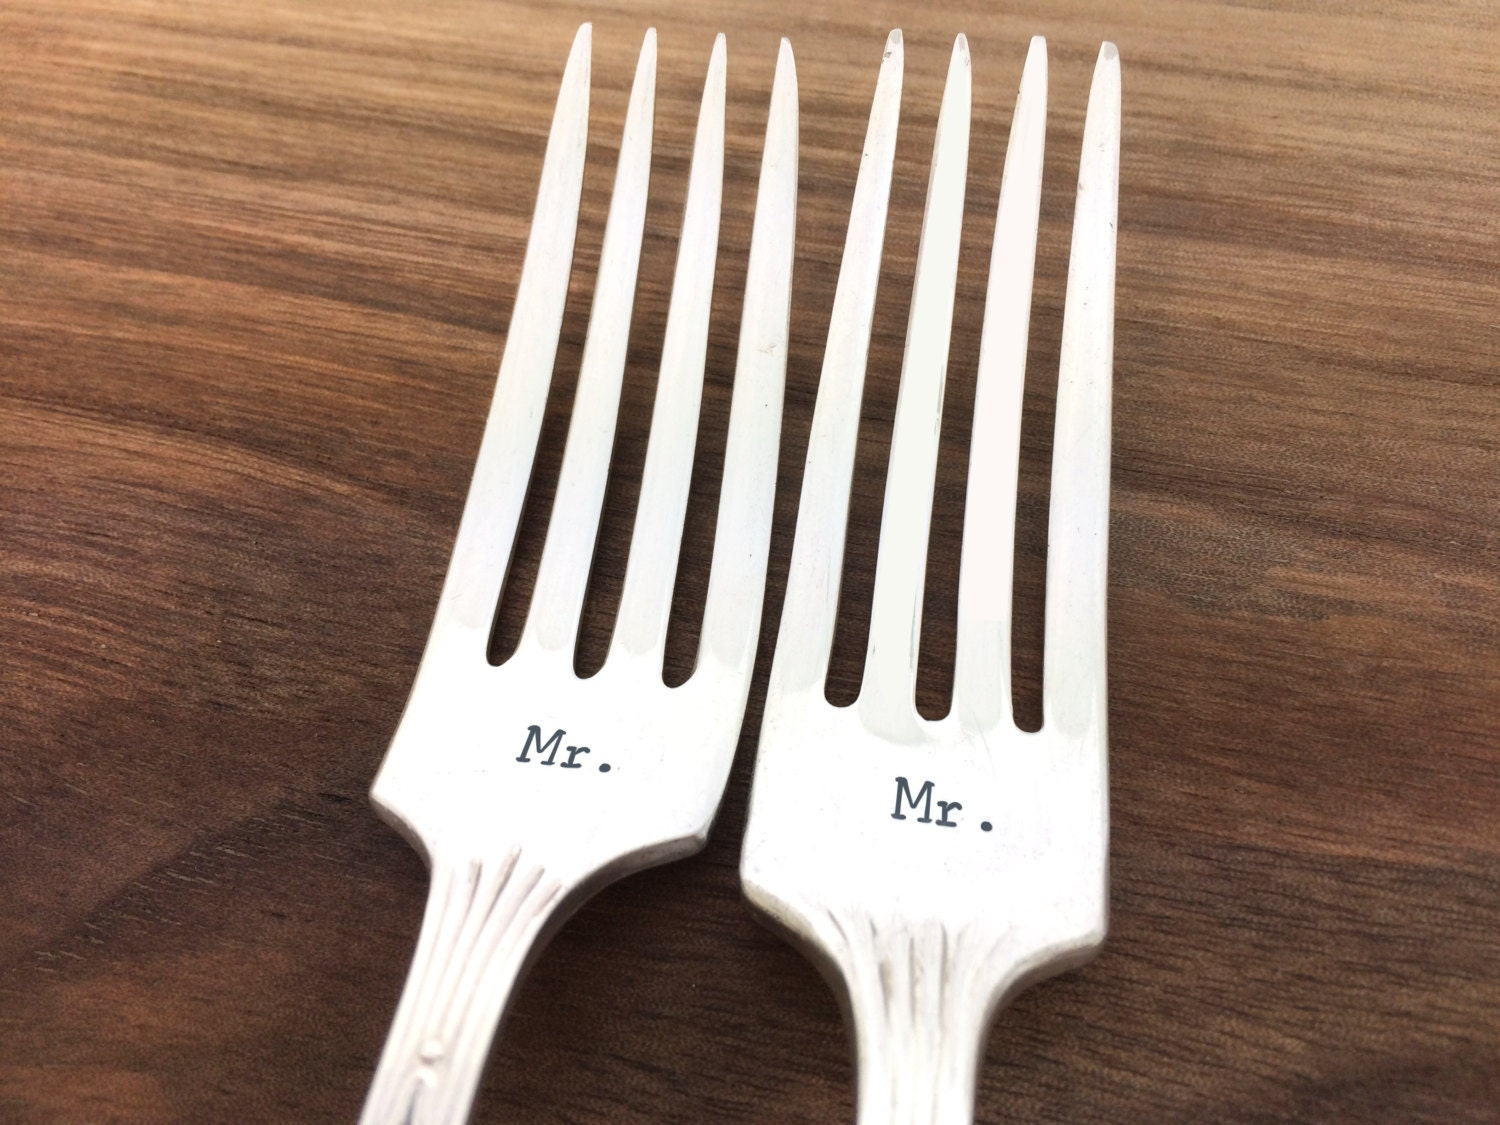 What To Get A Gay Couple For A Wedding Gift: Gift For Gay Couple Mr Mr Forks Gay Wedding Gift Hand